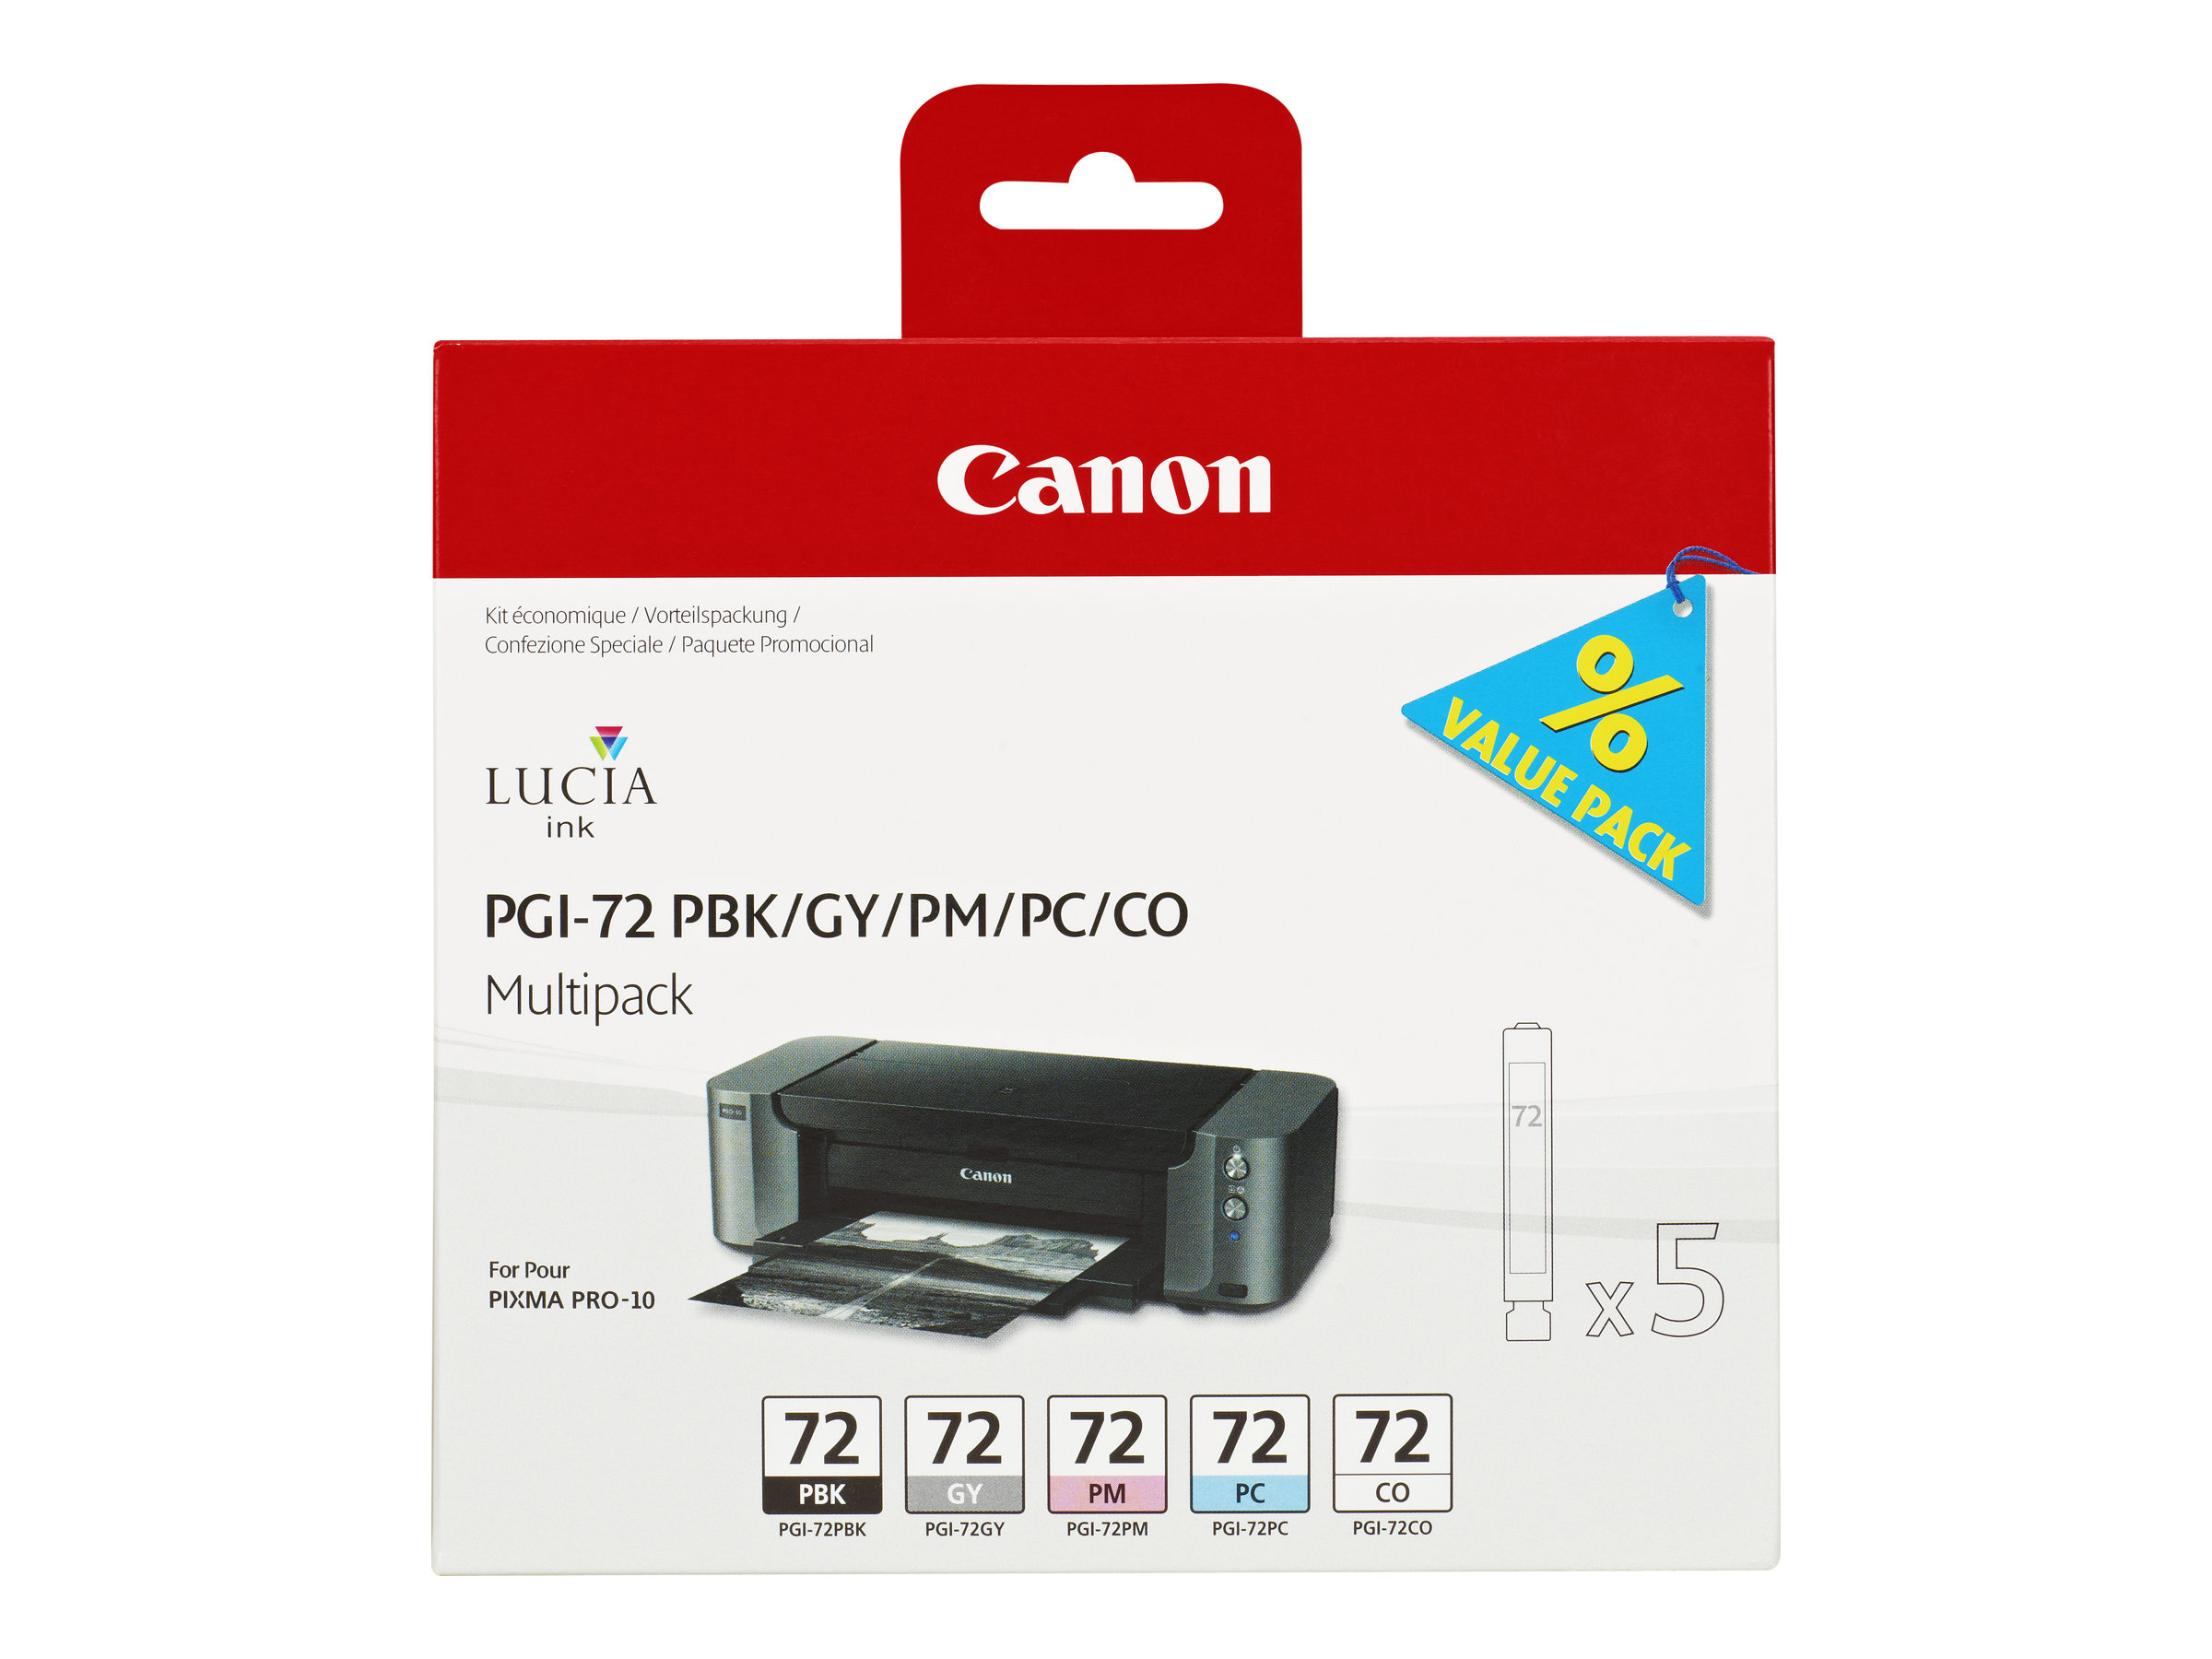 Canon PGI-72 PBK/GY/PM/PC/CO Multipack - pack de 5 - gris, photo noire, photo cyan, photo magenta, optimiseur de couleurs - originale - réservoir d'encre